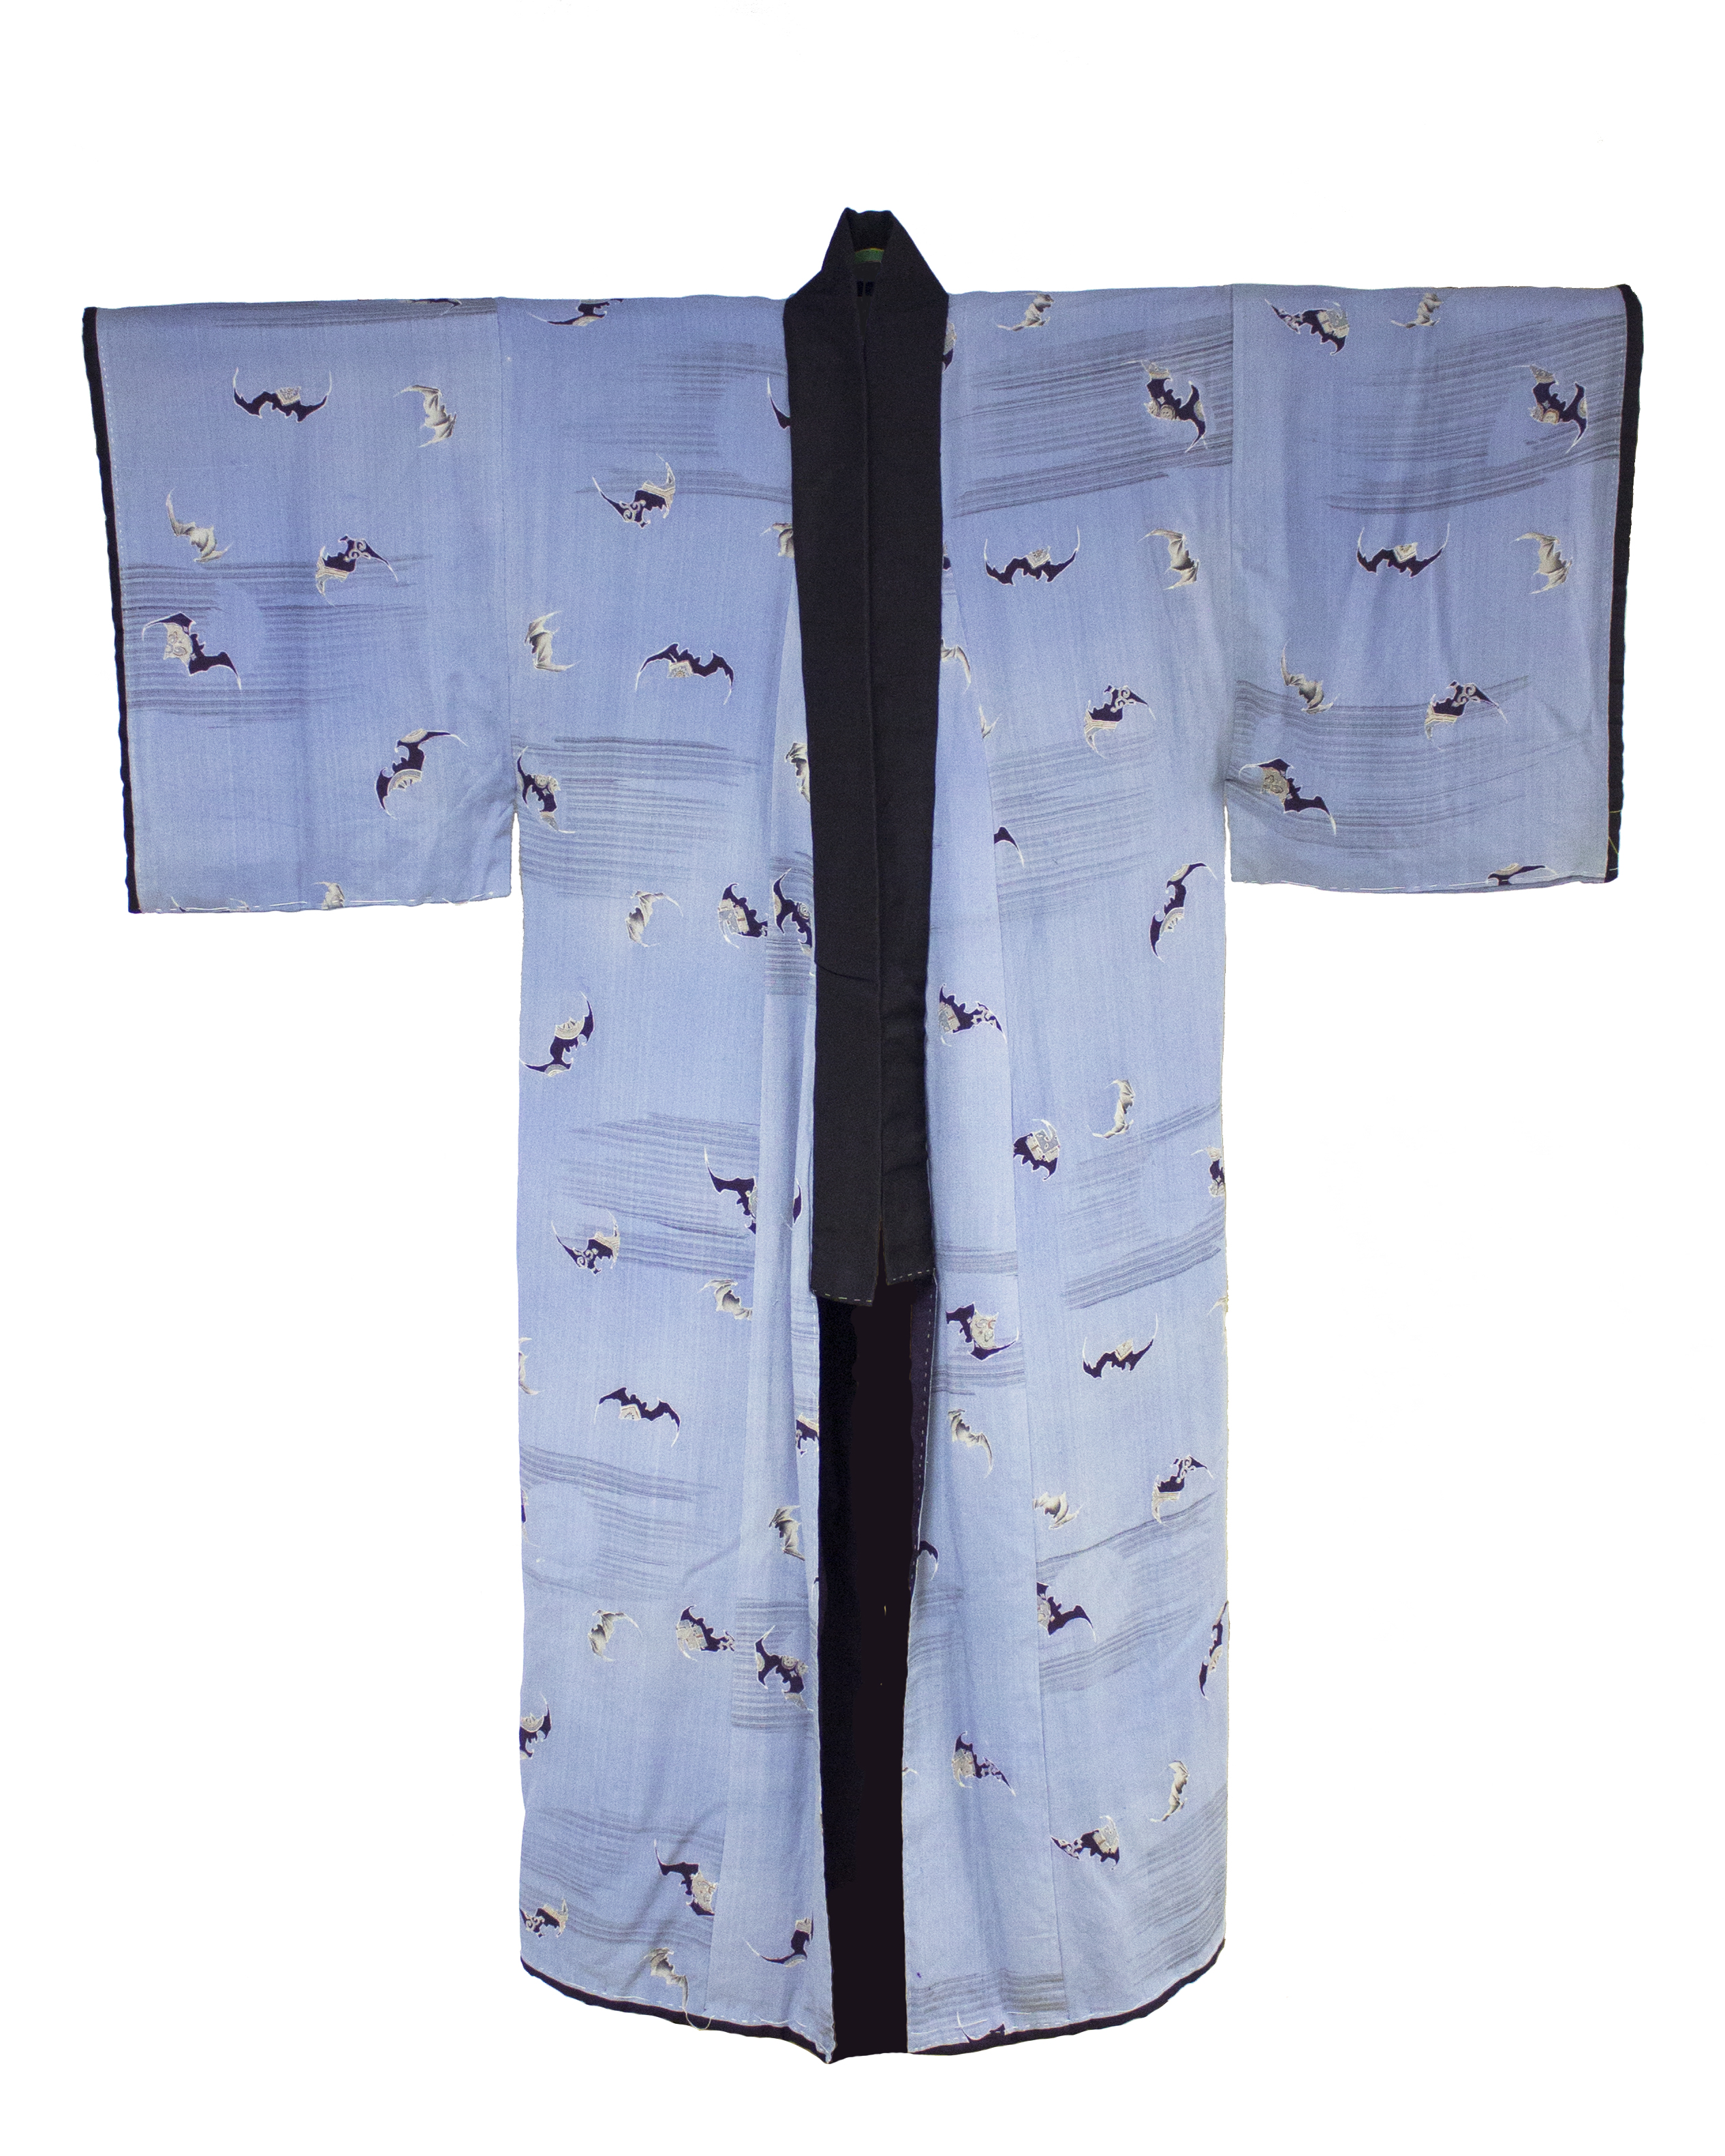 A Meiji-era kimono, decorated with bats, that belonged to Charles Longfellow.